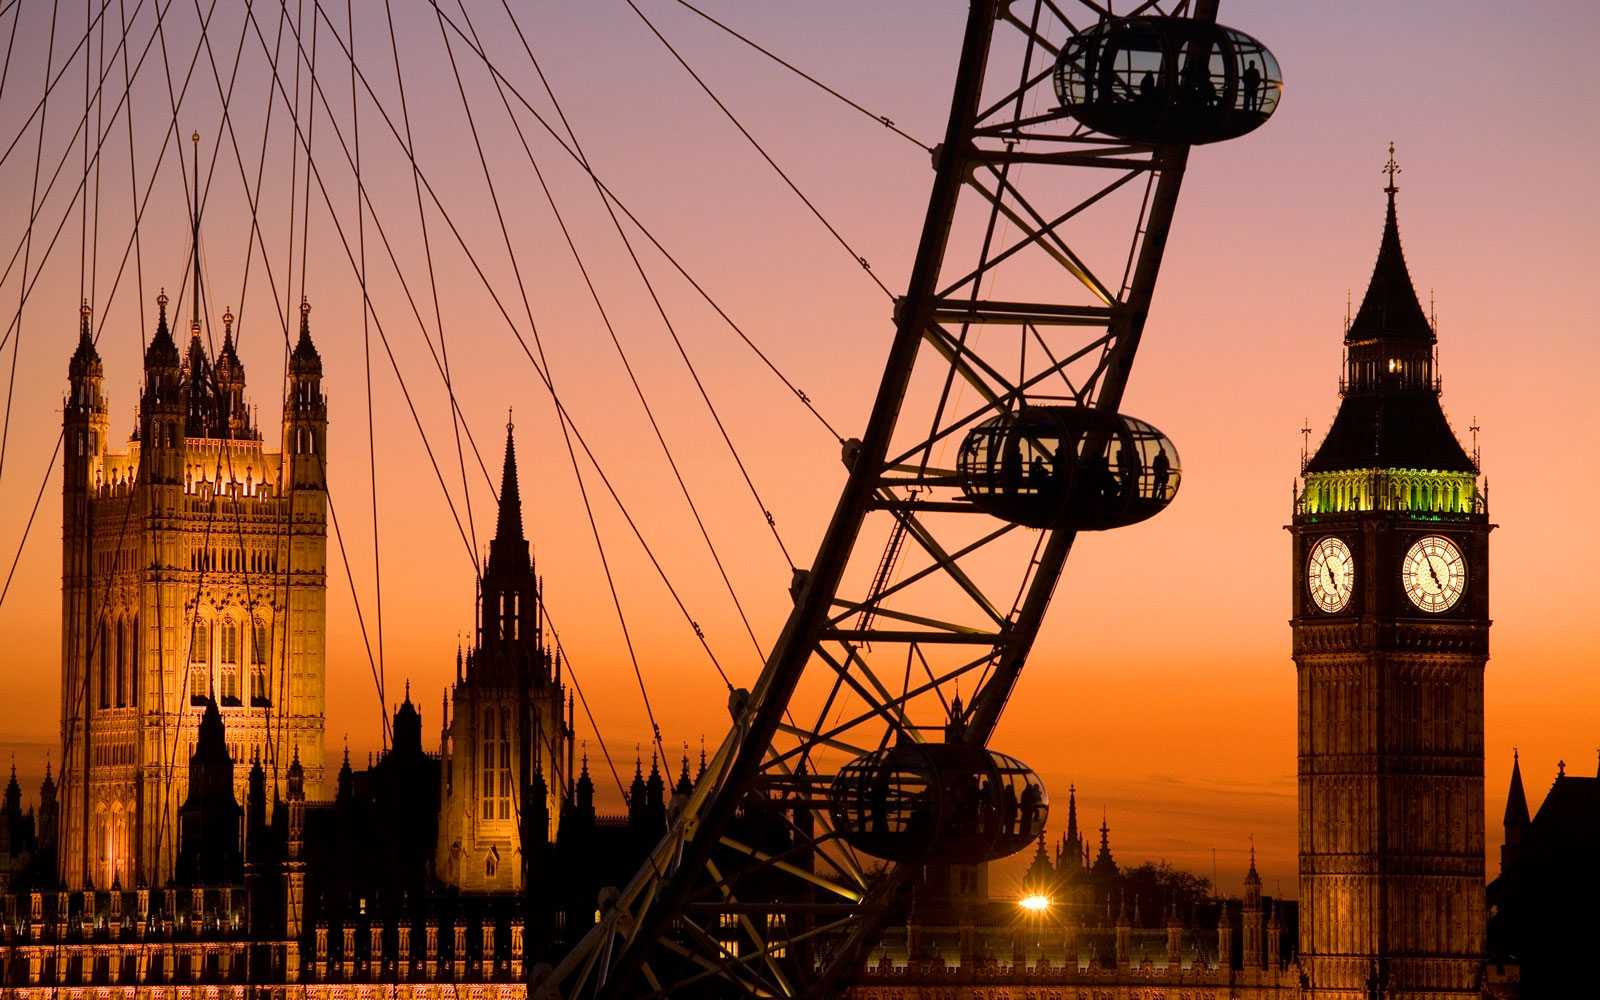 Travelers Can Win a Night on the London Eye